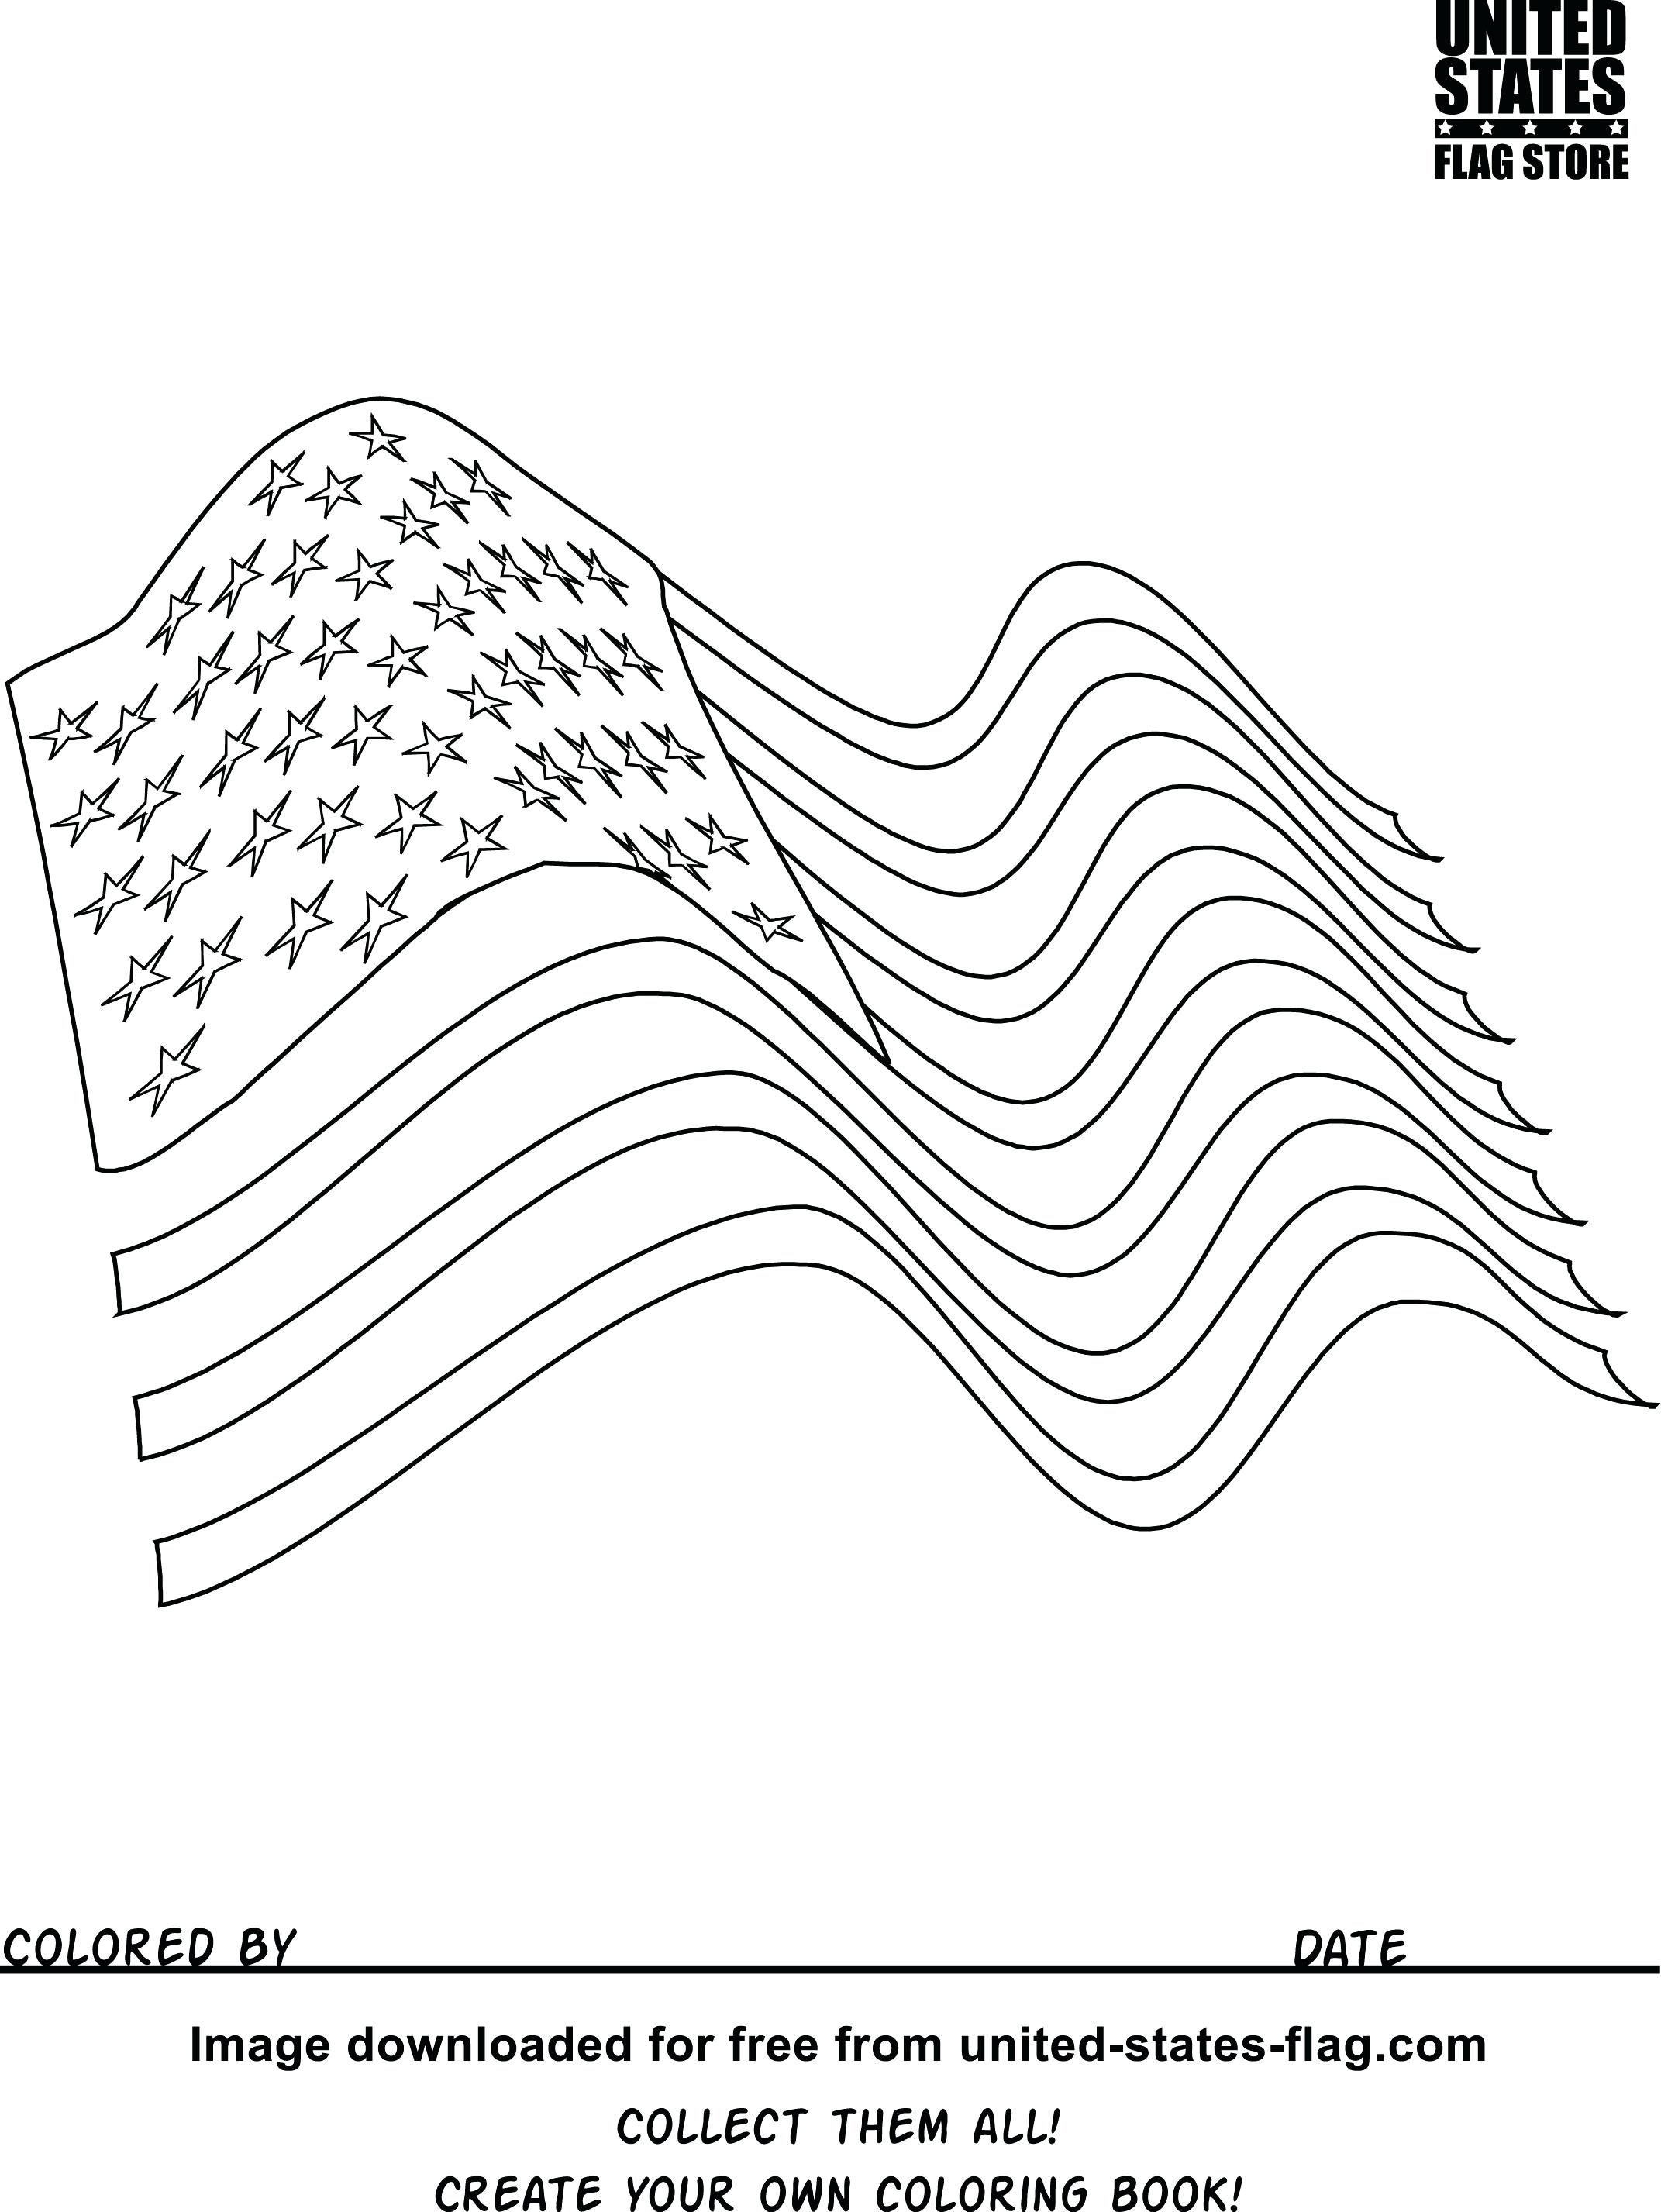 Usa Flag Coloring Page At Getcolorings